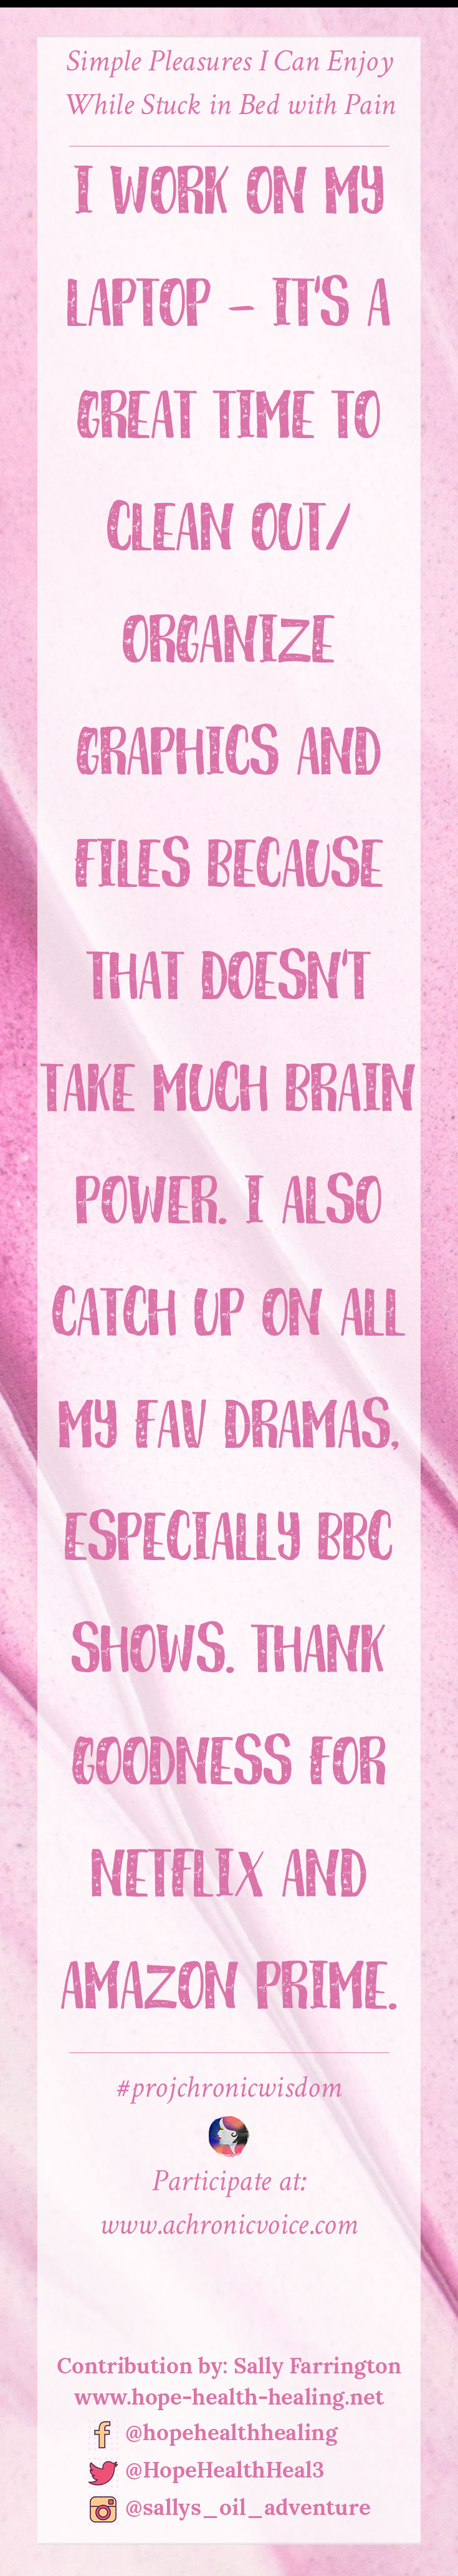 """""""I work on my laptop - it's a great time to clean out/organize graphics and files because that doesn't take much brain power. I also catch up on all my fav dramas, especially BBC shows. Thank goodness for Netflix and Amazon Prime."""" - Sally Farrington   Share your thought at: www.achronicvoice.com"""